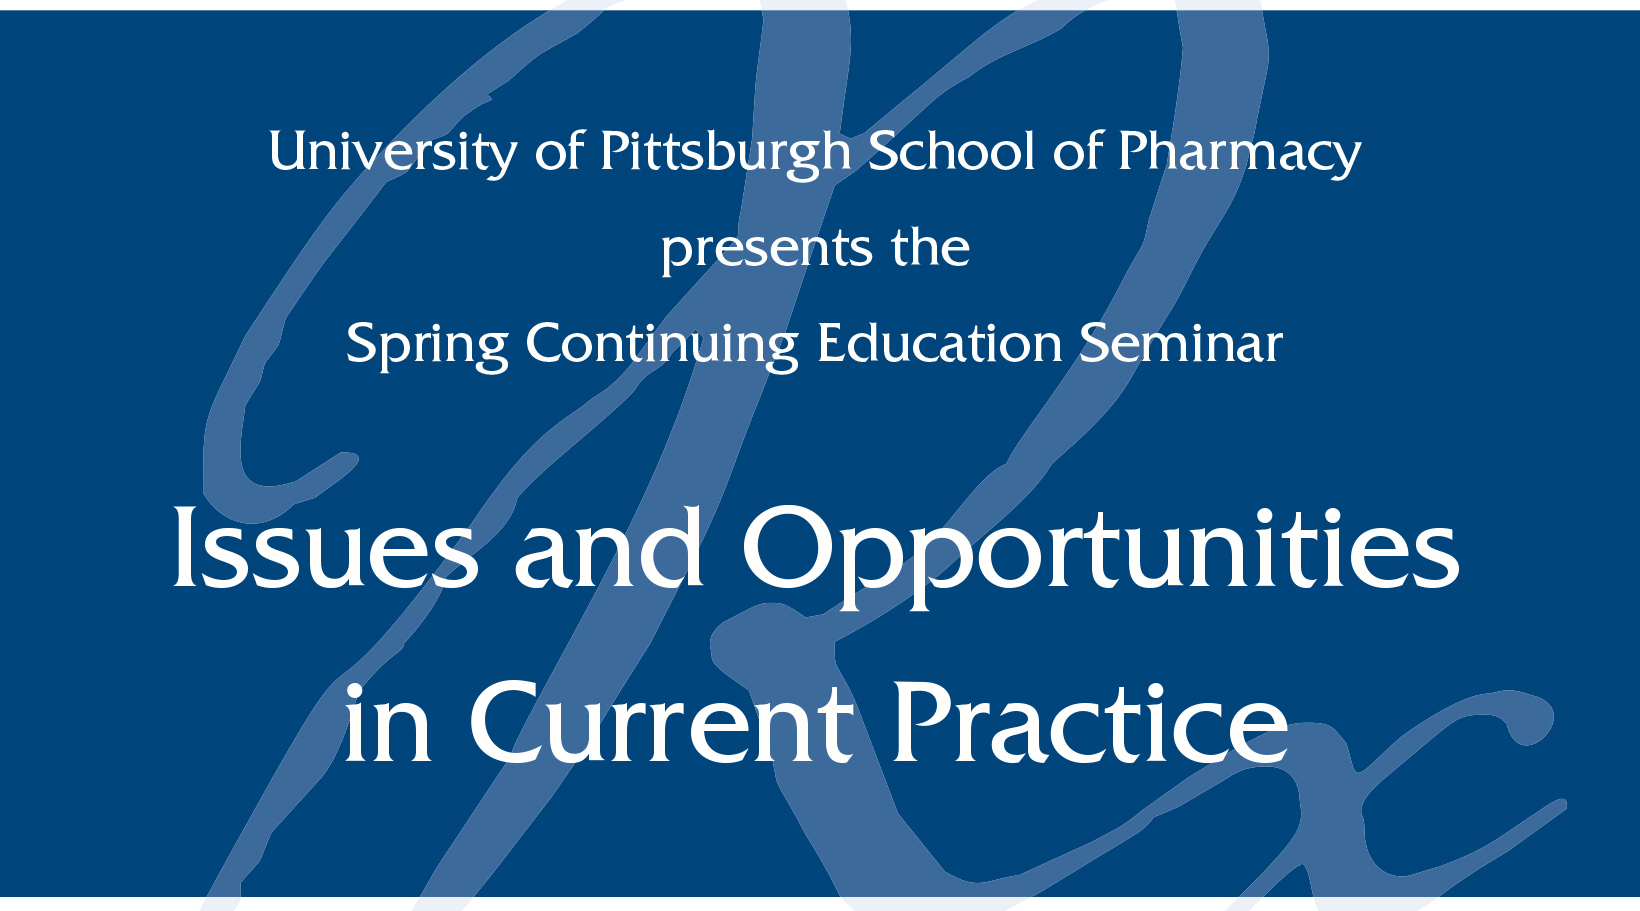 PittPharmacy CE: Issues and Opportunities in Current Practice